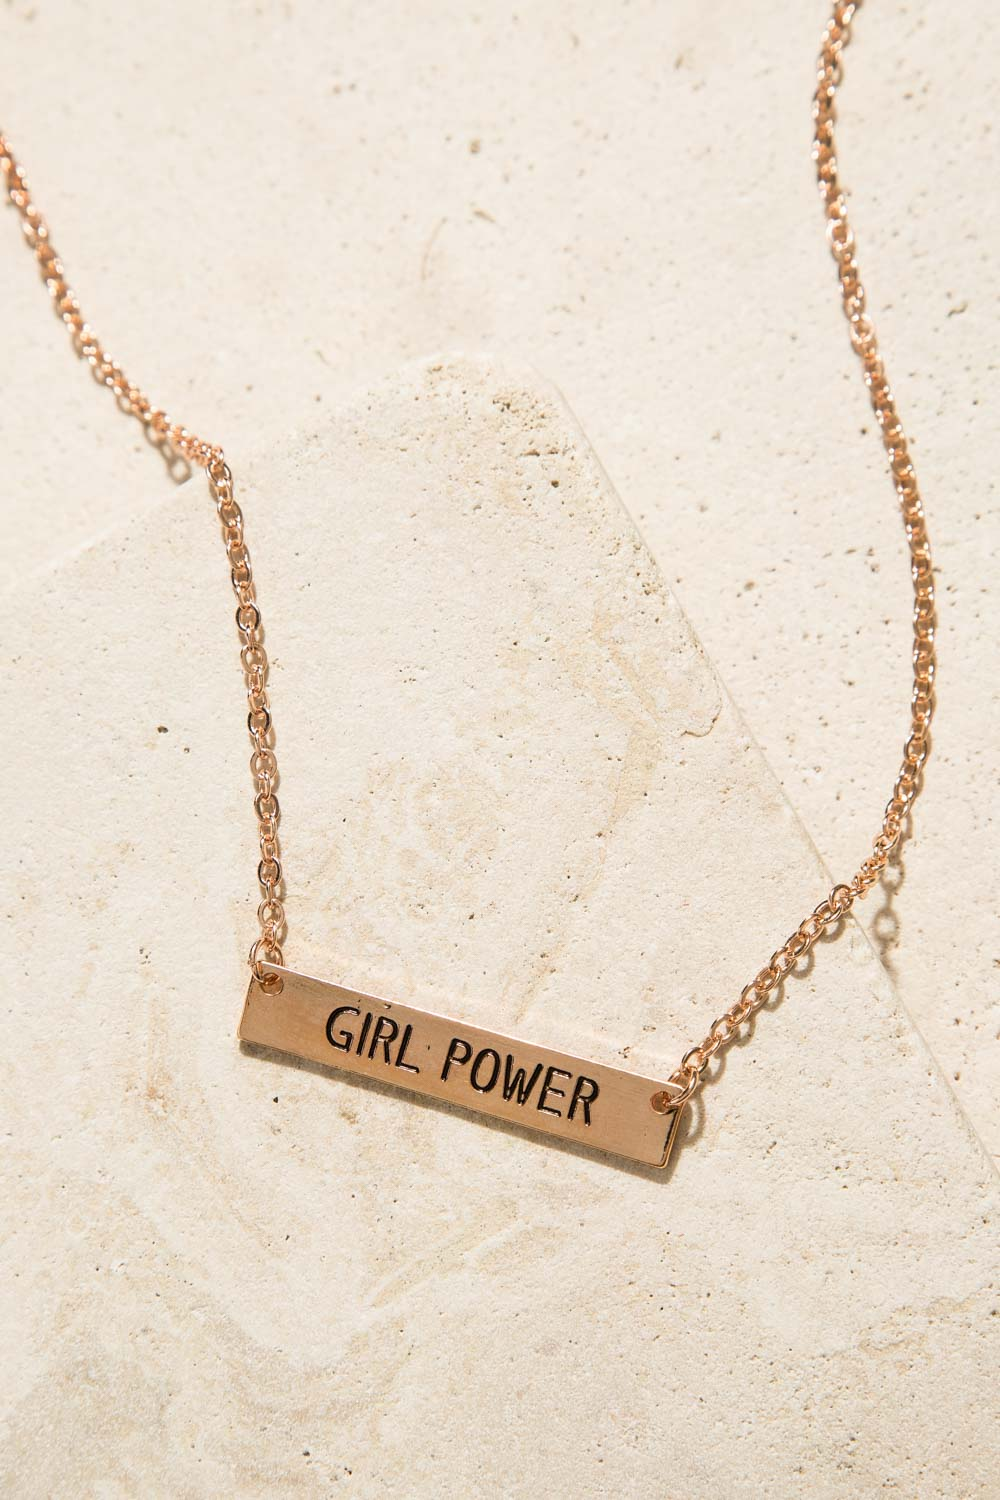 Type 3 Girl Power Necklace